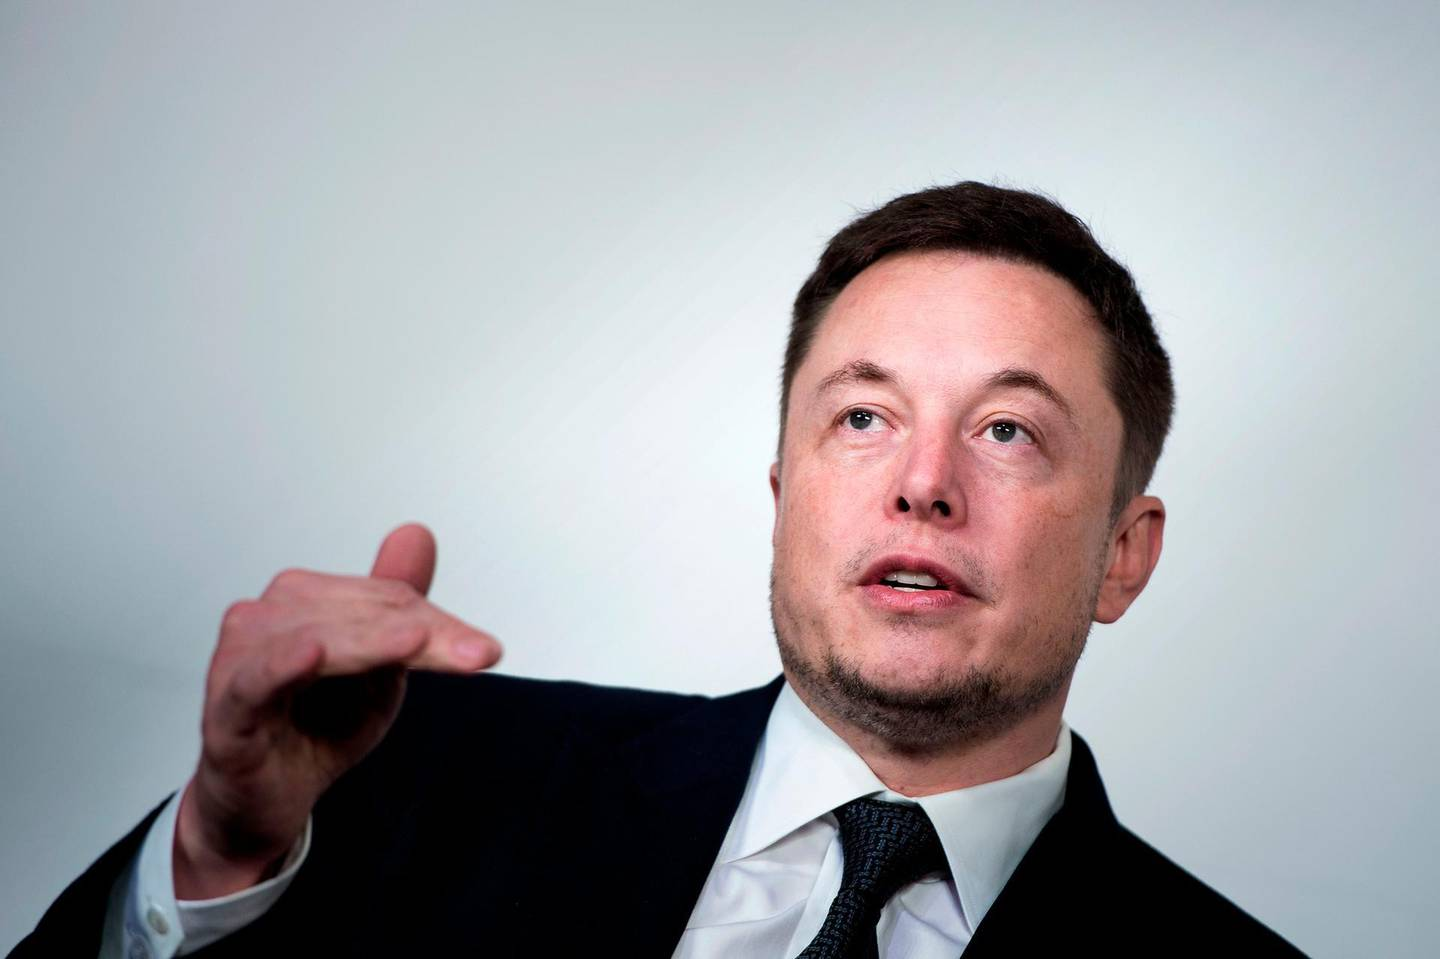 """(FILES) In this file photo taken on July 19, 2017 Elon Musk, CEO of SpaceX and Tesla, speaks during the International Space Station Research and Development Conference at the Omni Shoreham Hotel in Washington, DC. Tesla chief Elon Musk told employees May 14, 2018 the electric carmaker is being reorganized to speed up production of Model 3 vehicles -- a key to profitability at the fast-growing firm.""""To ensure that Tesla is well prepared for the future, we have been undertaking a thorough reorganization of our company,"""" the memo obtained by AFP said.""""As part of the reorg, we are flattening the management structure to improve communication, combining functions where sensible and trimming activities that are not vital to the success of our mission.""""  / AFP / Brendan Smialowski"""